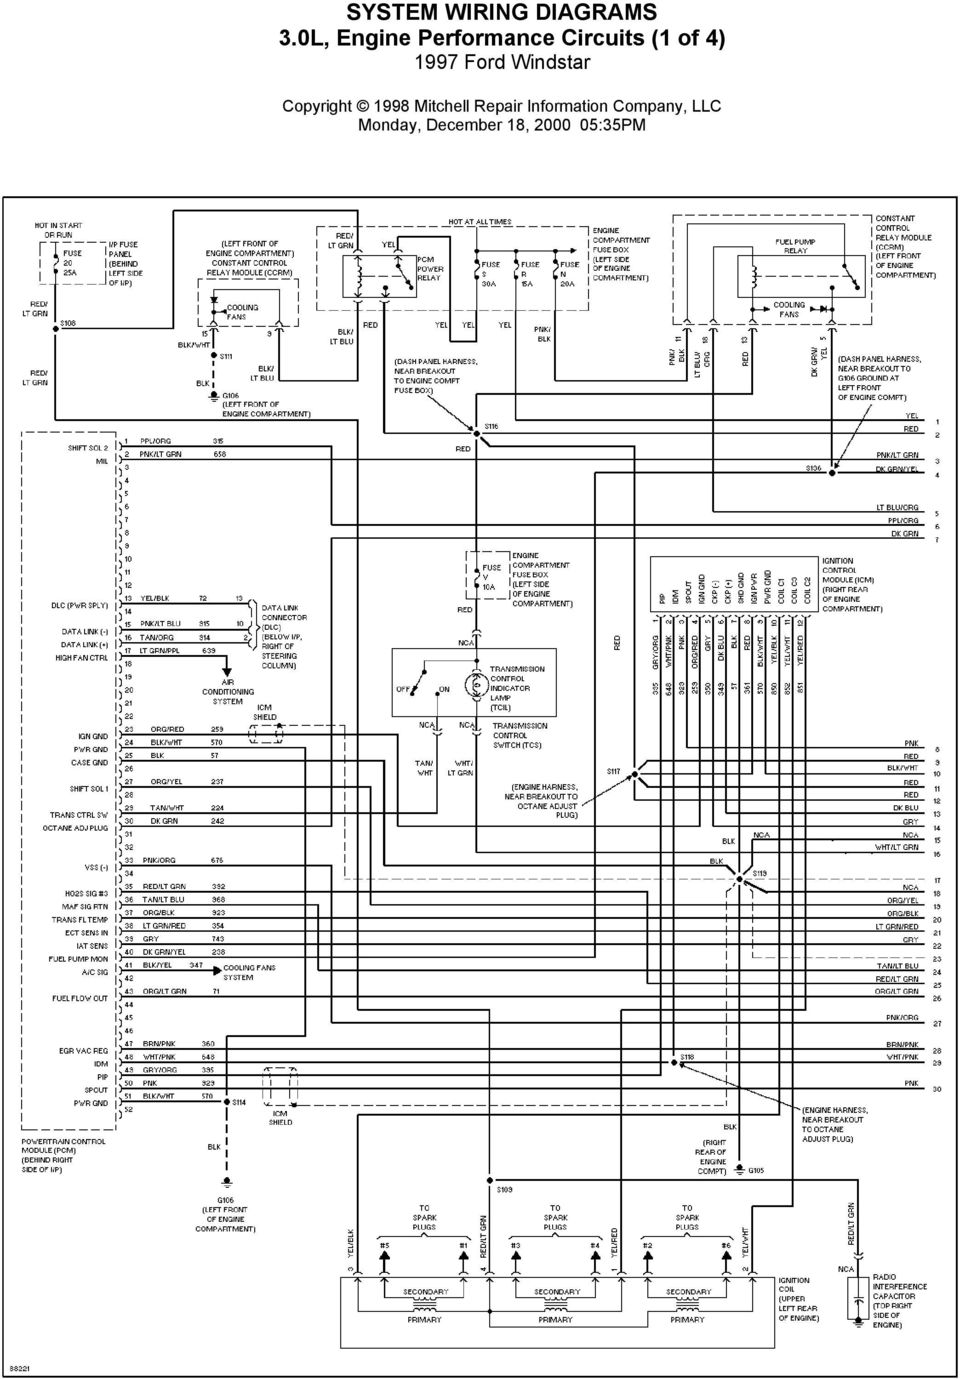 System Wiring Diagrams Air Conditioning Circuits 1997 Ford Windstar 05 Grand Cherokee Abs Diagram 1 Of 4